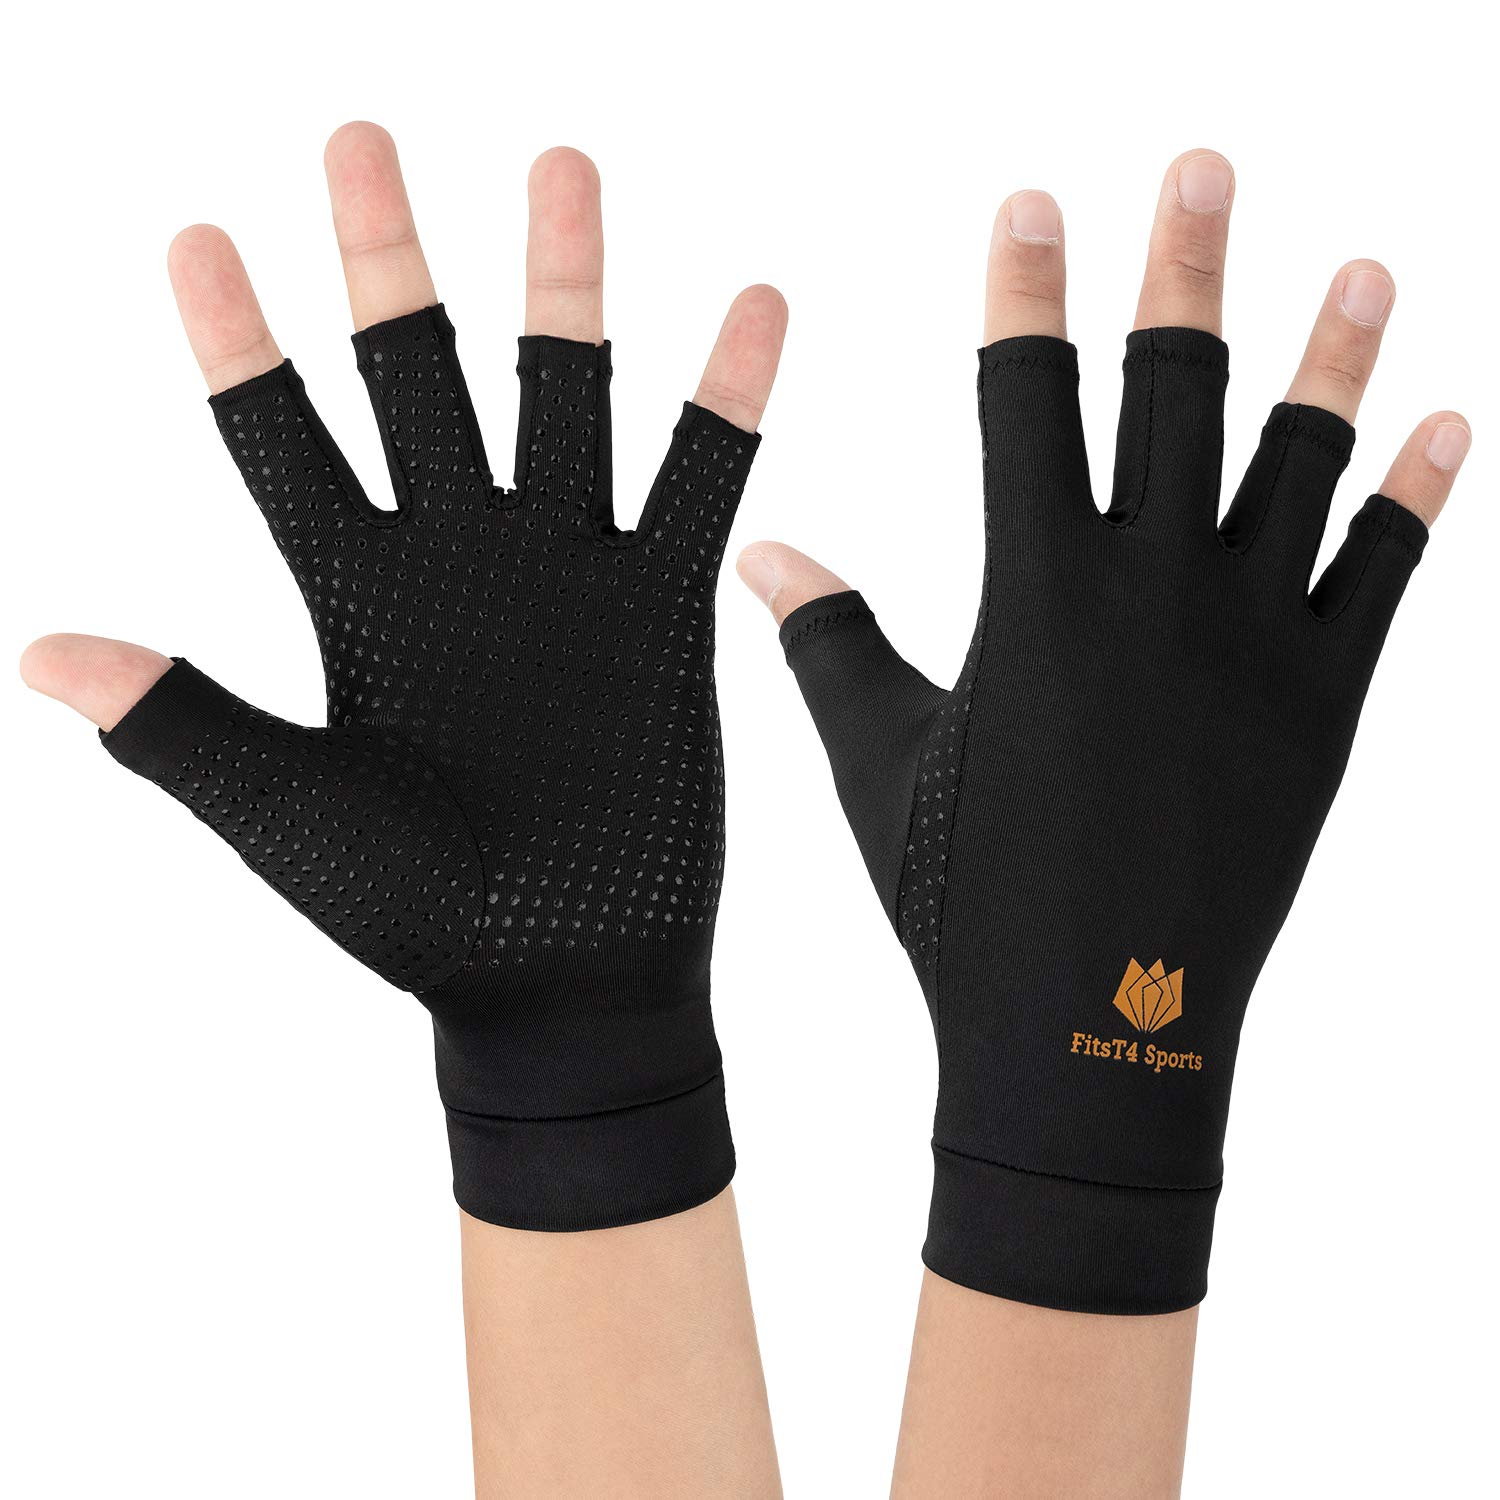 FitsT4 Arthritis Gloves for Men and Women Fingerless Compression Gloves Work for Rheumatoid Arthritis, Carpal Tunnel, RSI Osteoarthritis & Tendonitis Pair Fit Size M